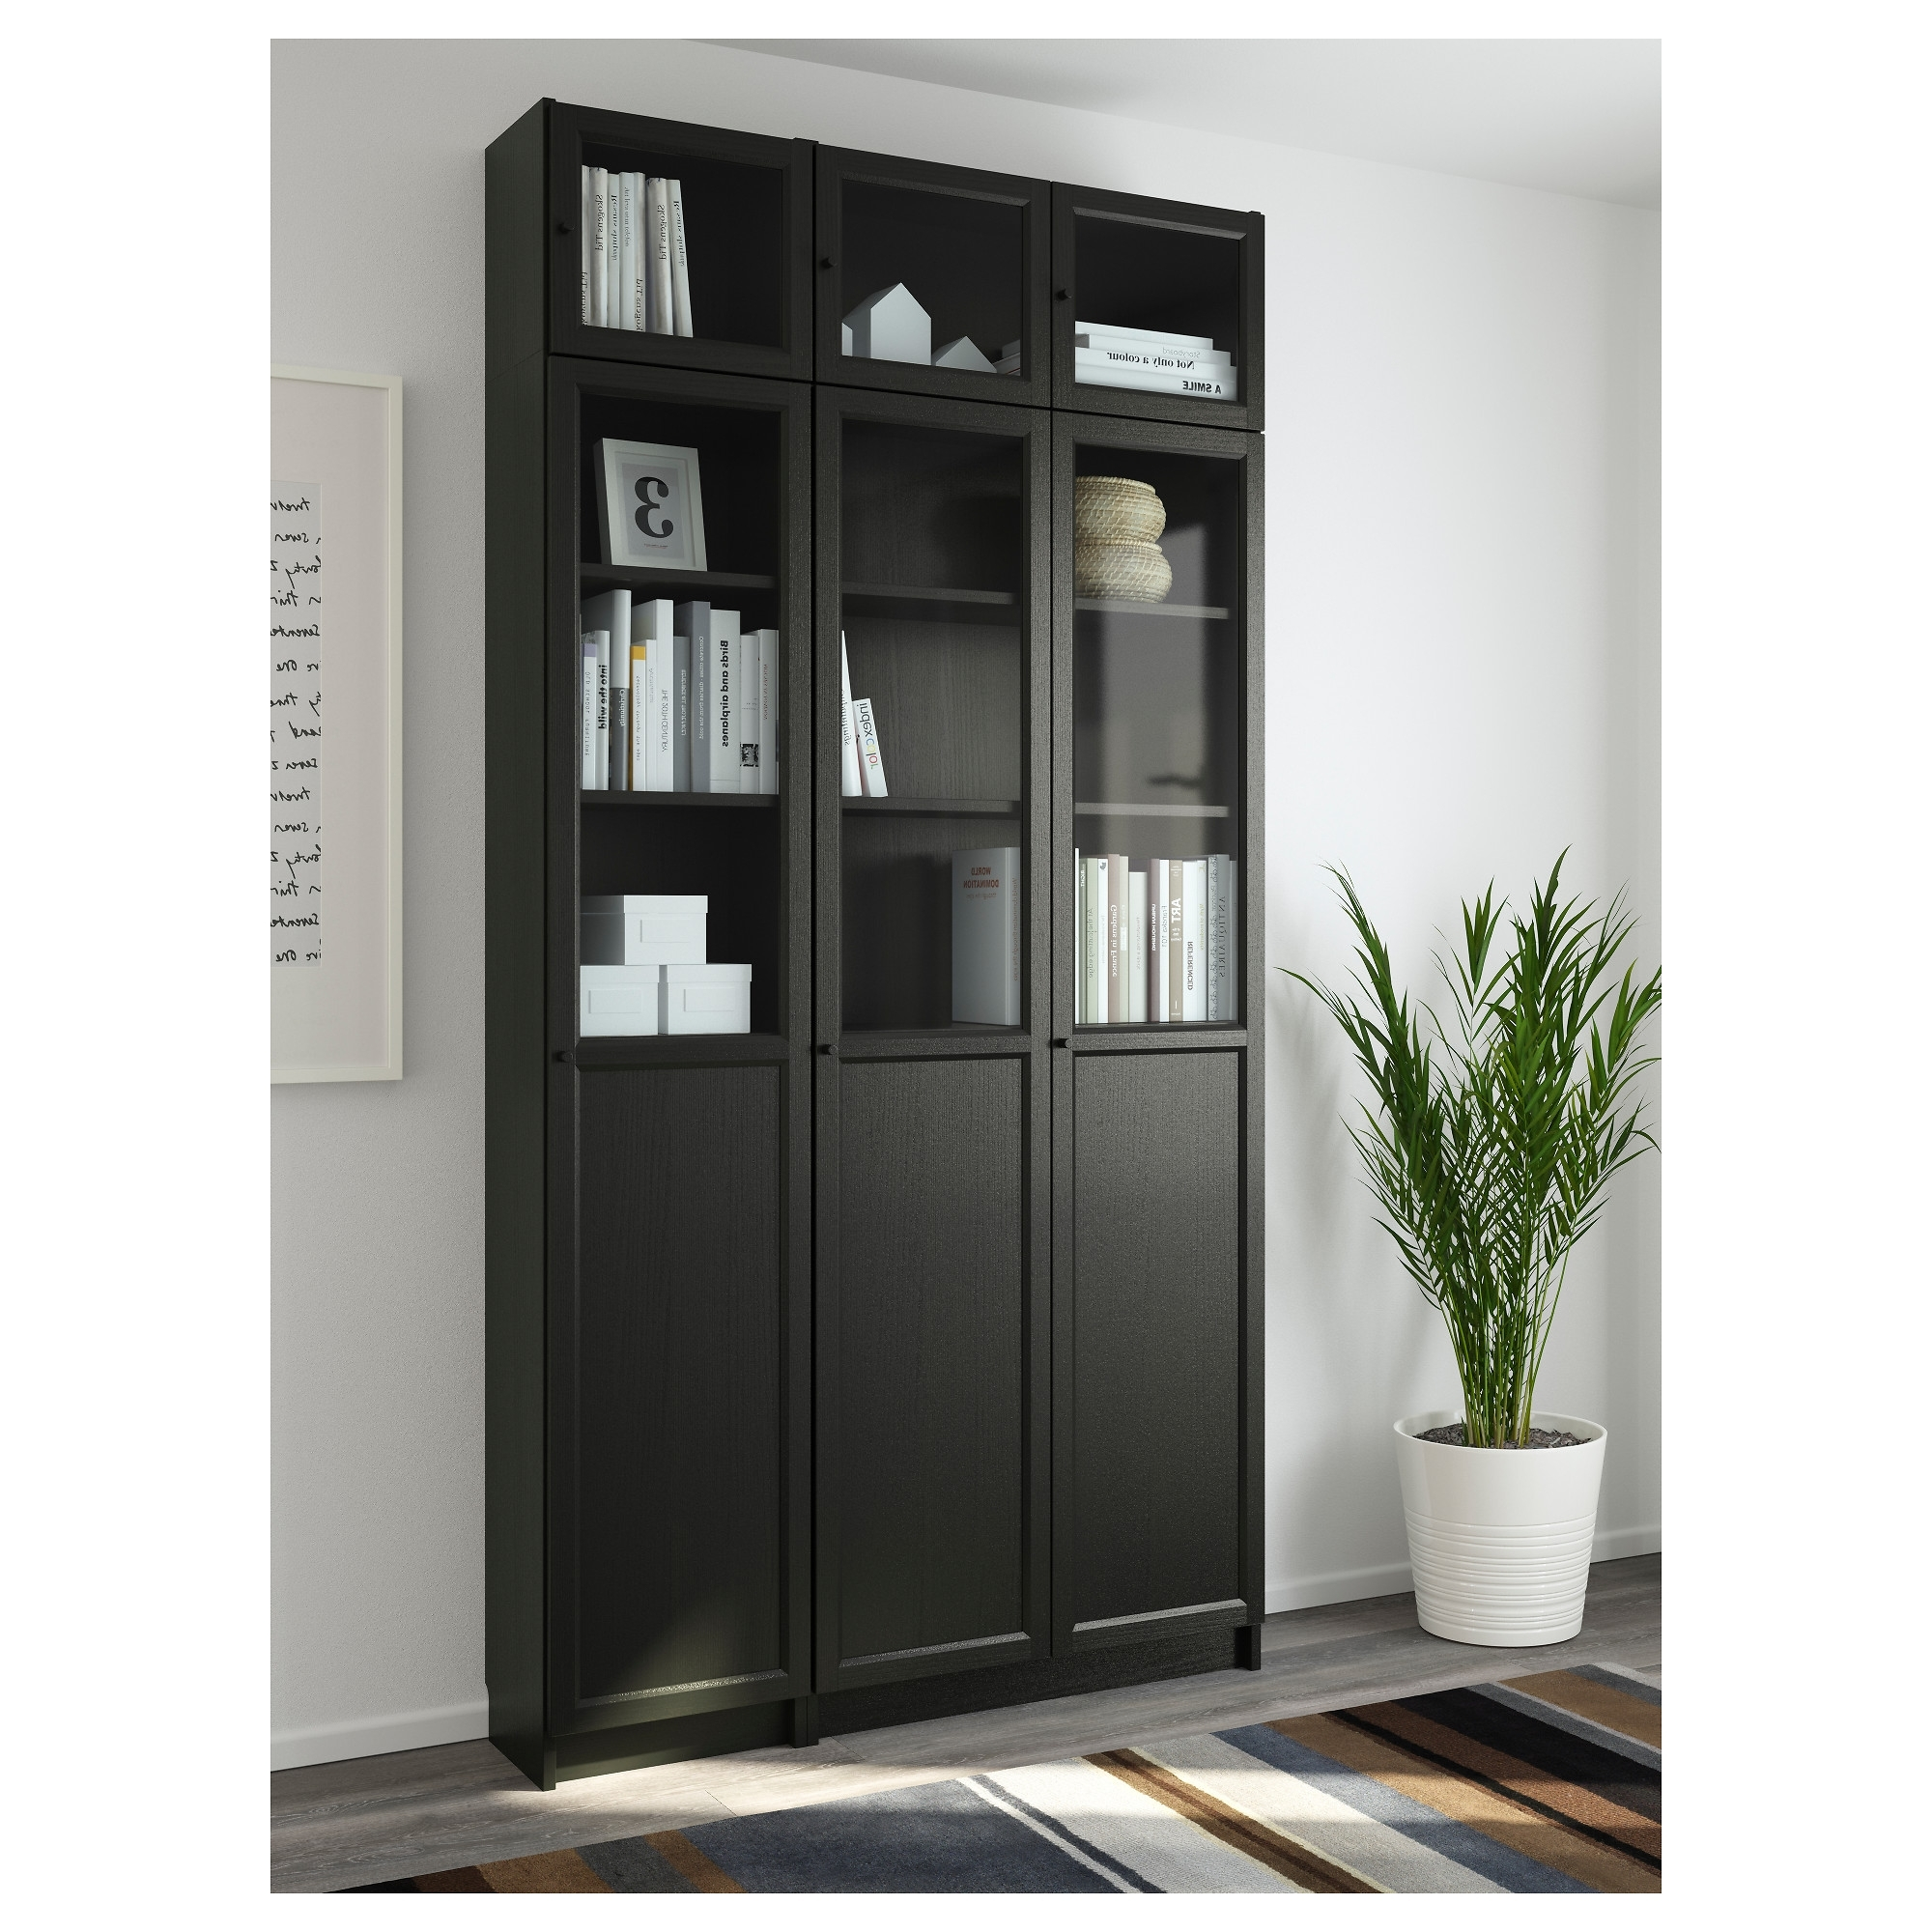 Best And Newest Black Bookcases With Doors Regarding Billy / Oxberg Bookcase – Black Brown/glass – Ikea (View 3 of 15)